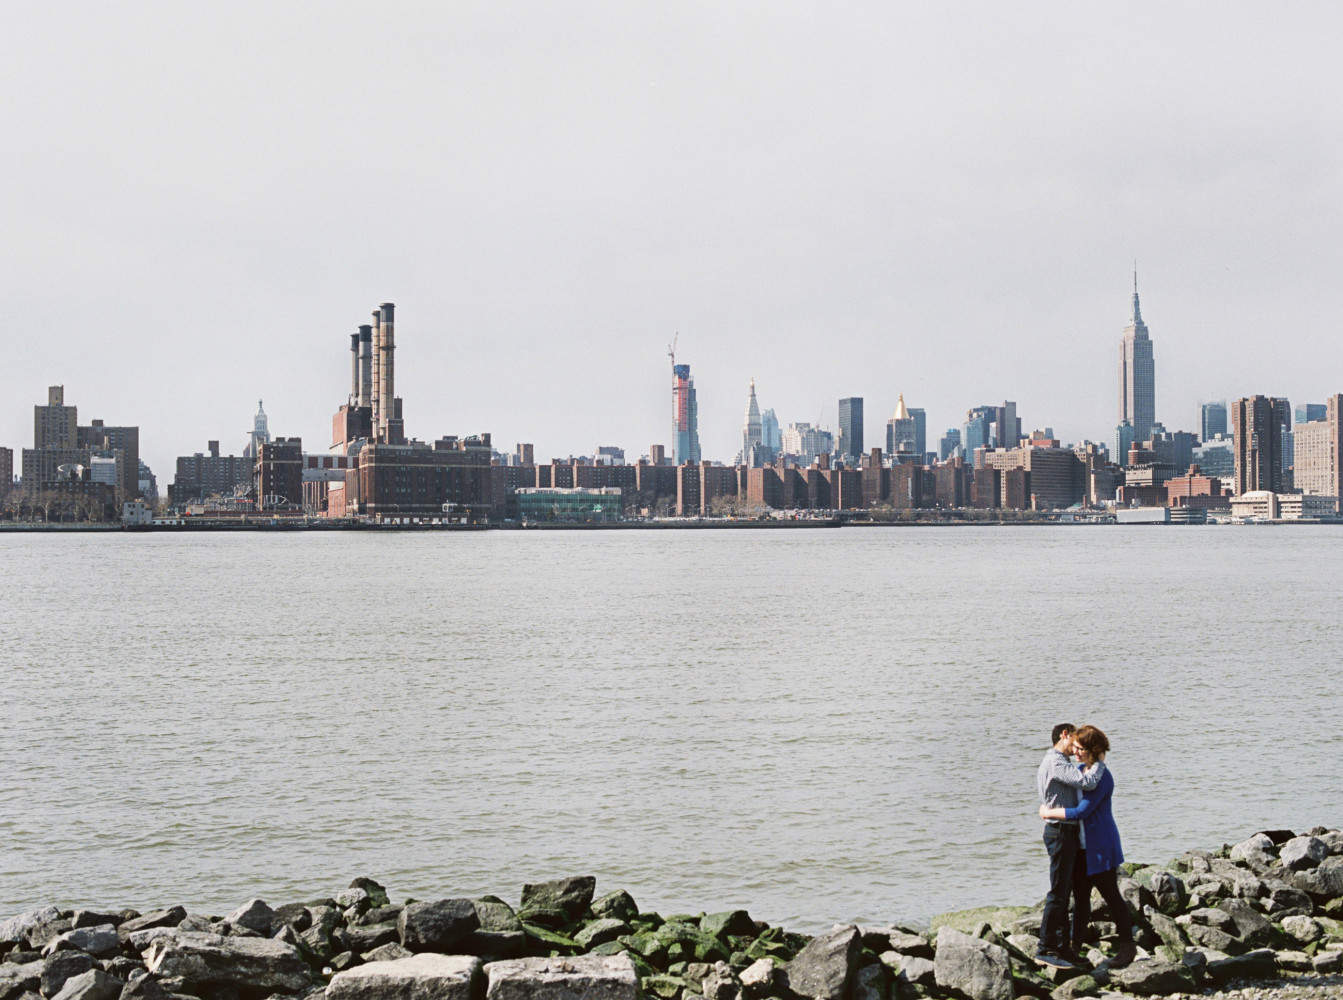 Alexandra-Elise-Photography-Ali-Reed-NYC-Engagement-Wedding-Photographer-016